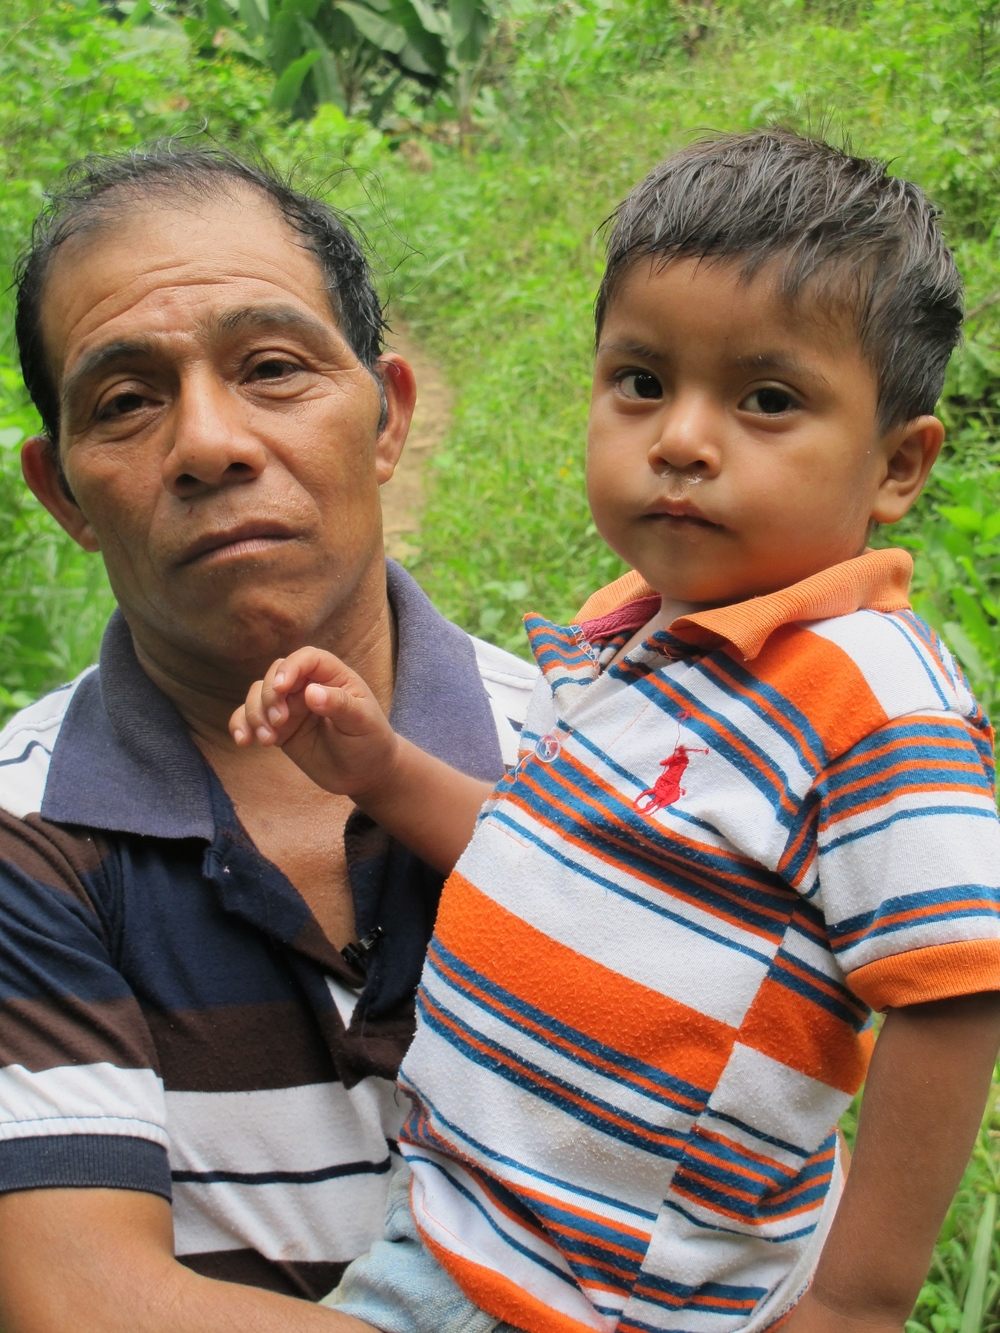 Francisco and his son Benjamin, who was kidnapped.